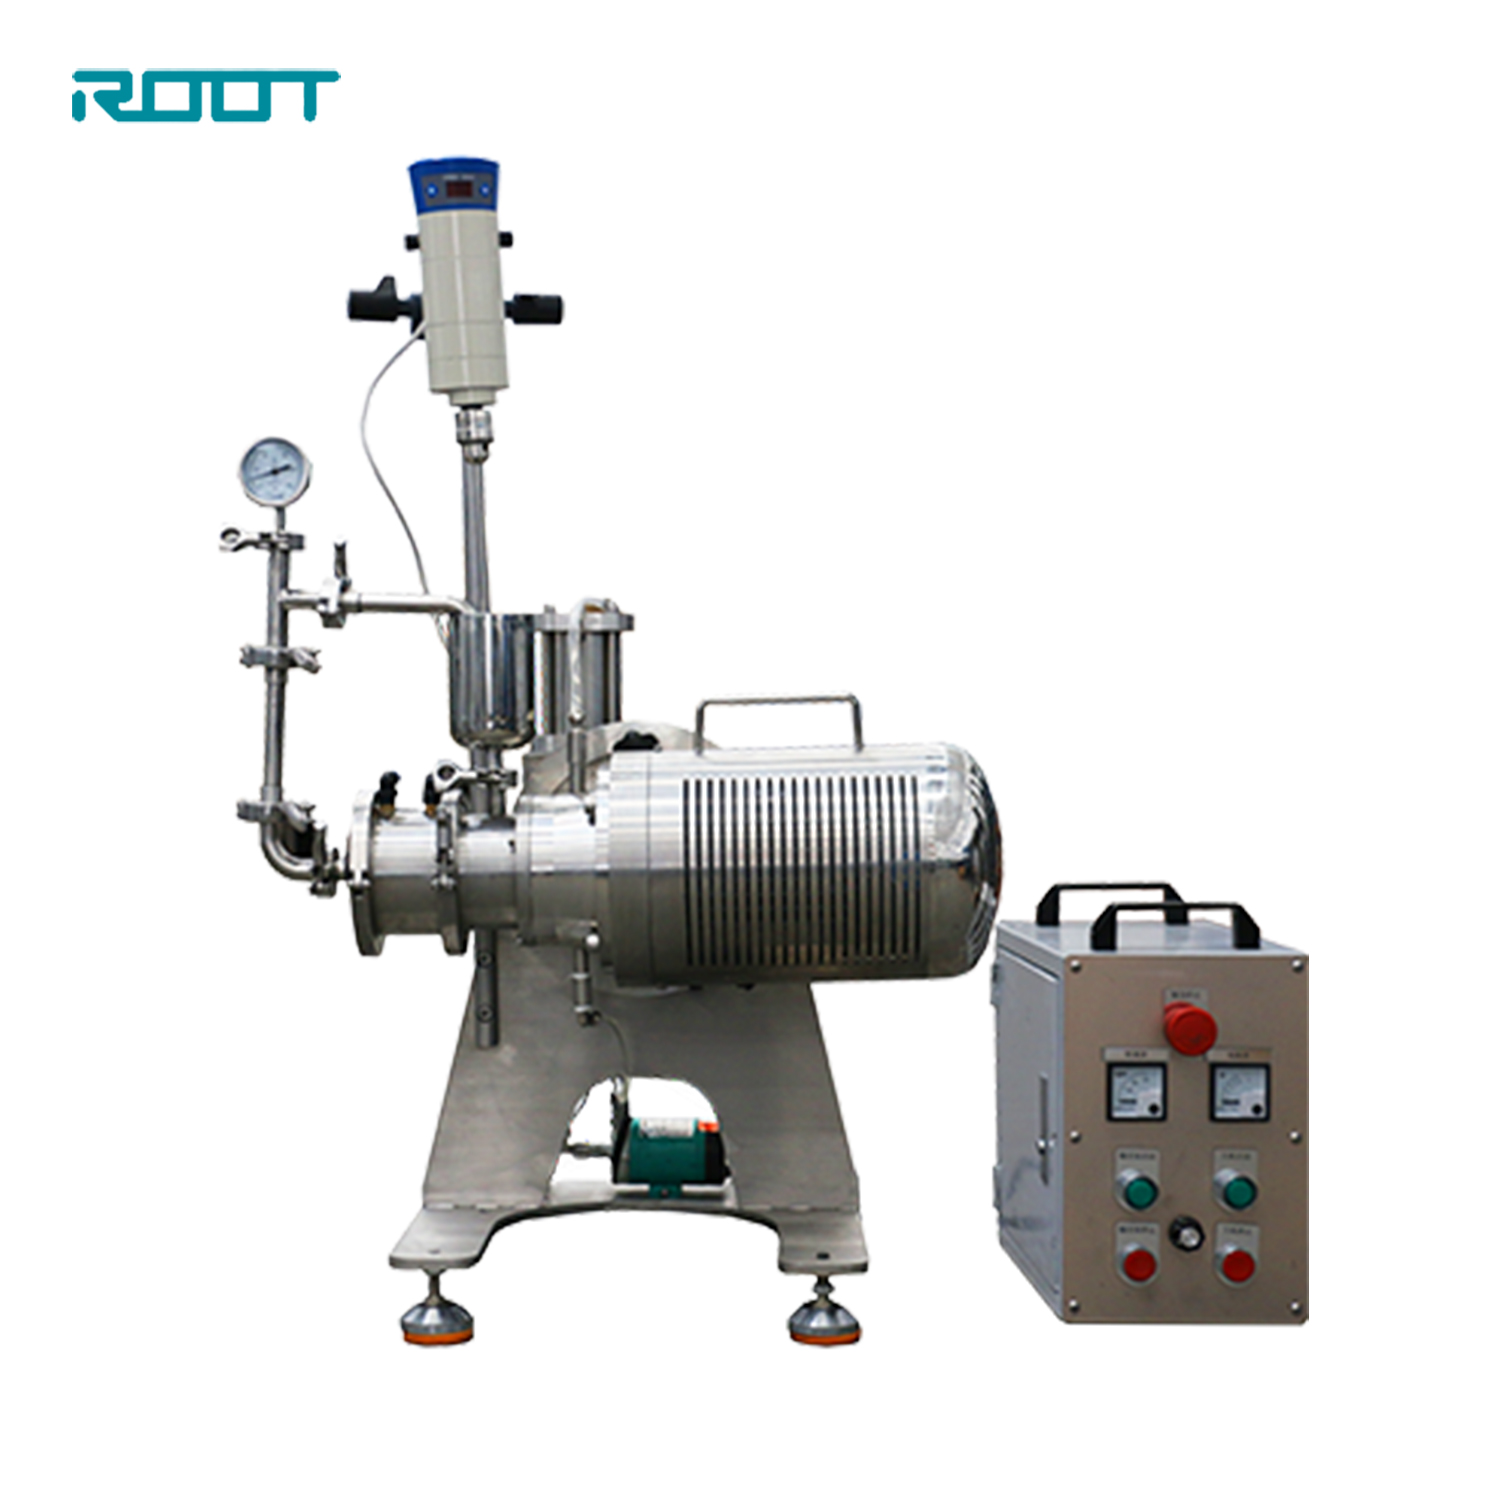 ROOT lab small 0.2L horizontal sand mill for color paint formulation research